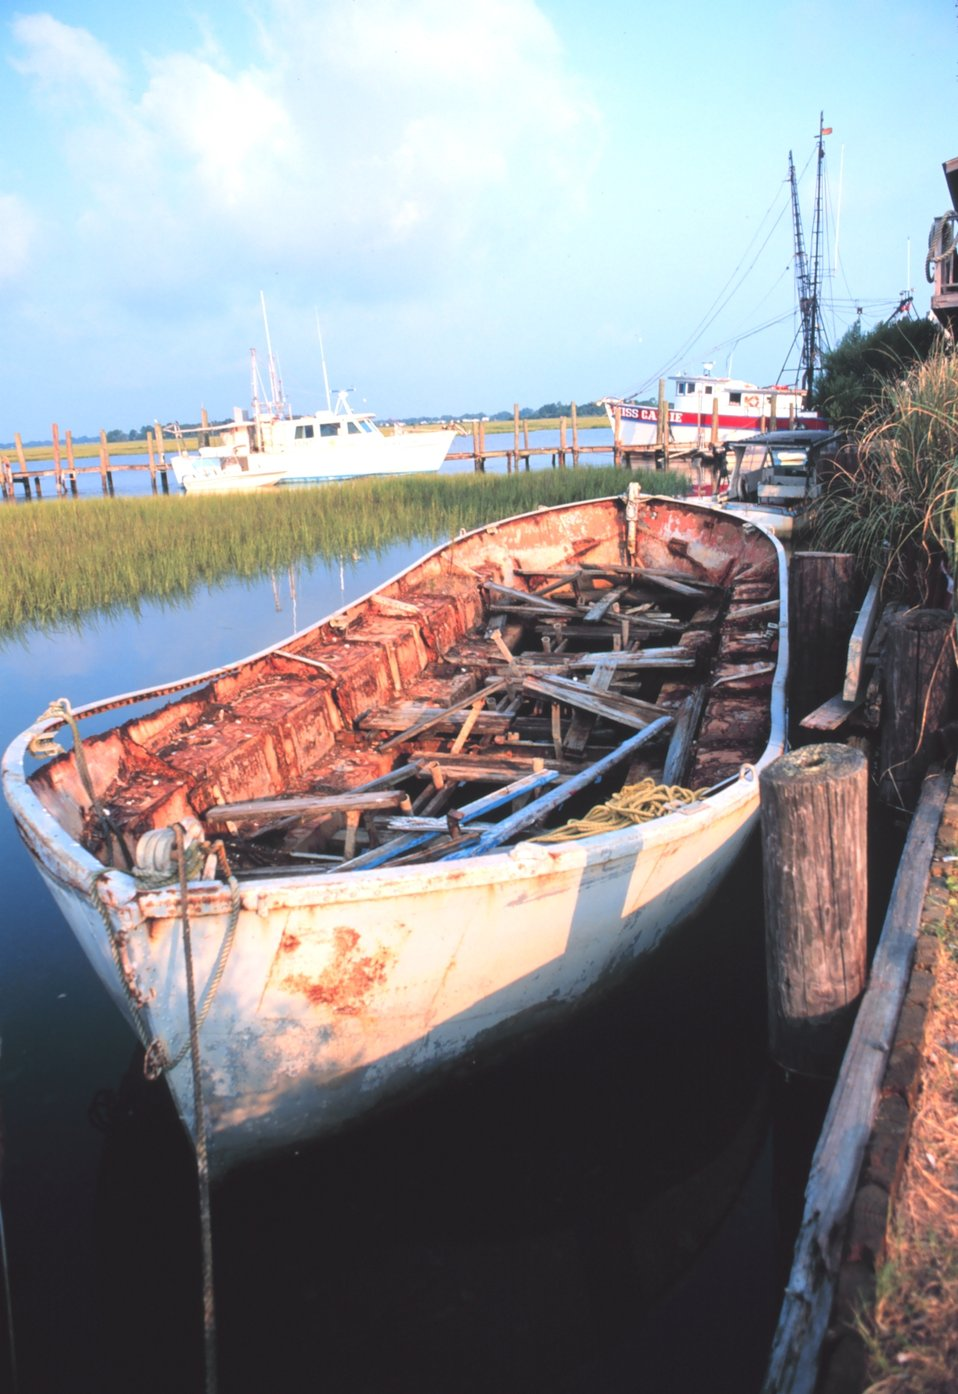 A derelict boat rotting away in the wetlands of Folly Island